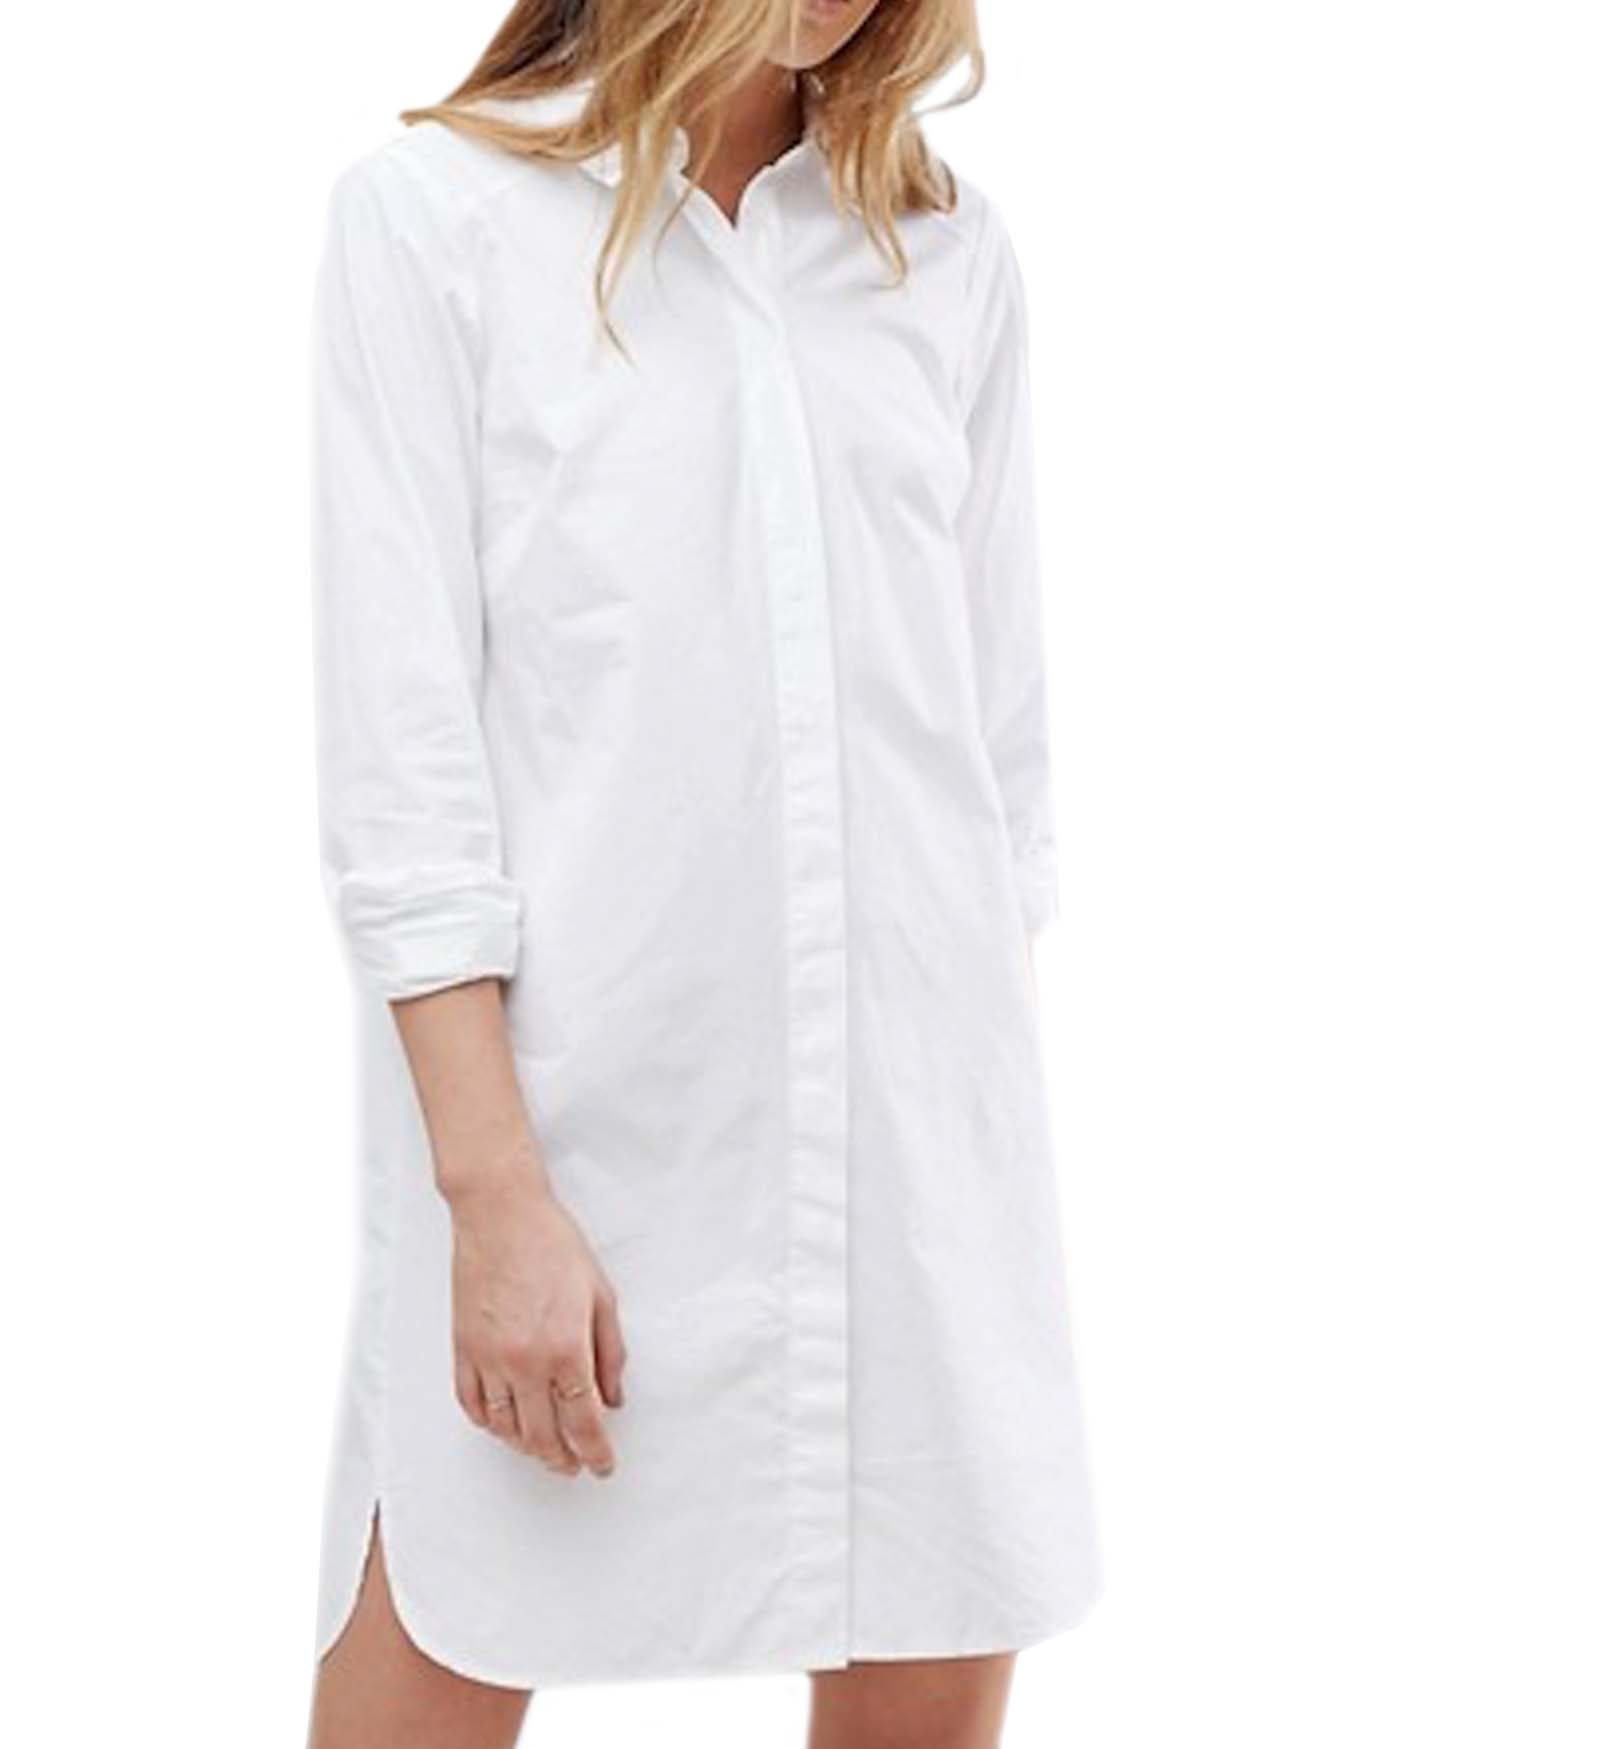 Trend_Shirtdress_NewsCred_1160x1740_02.jpg